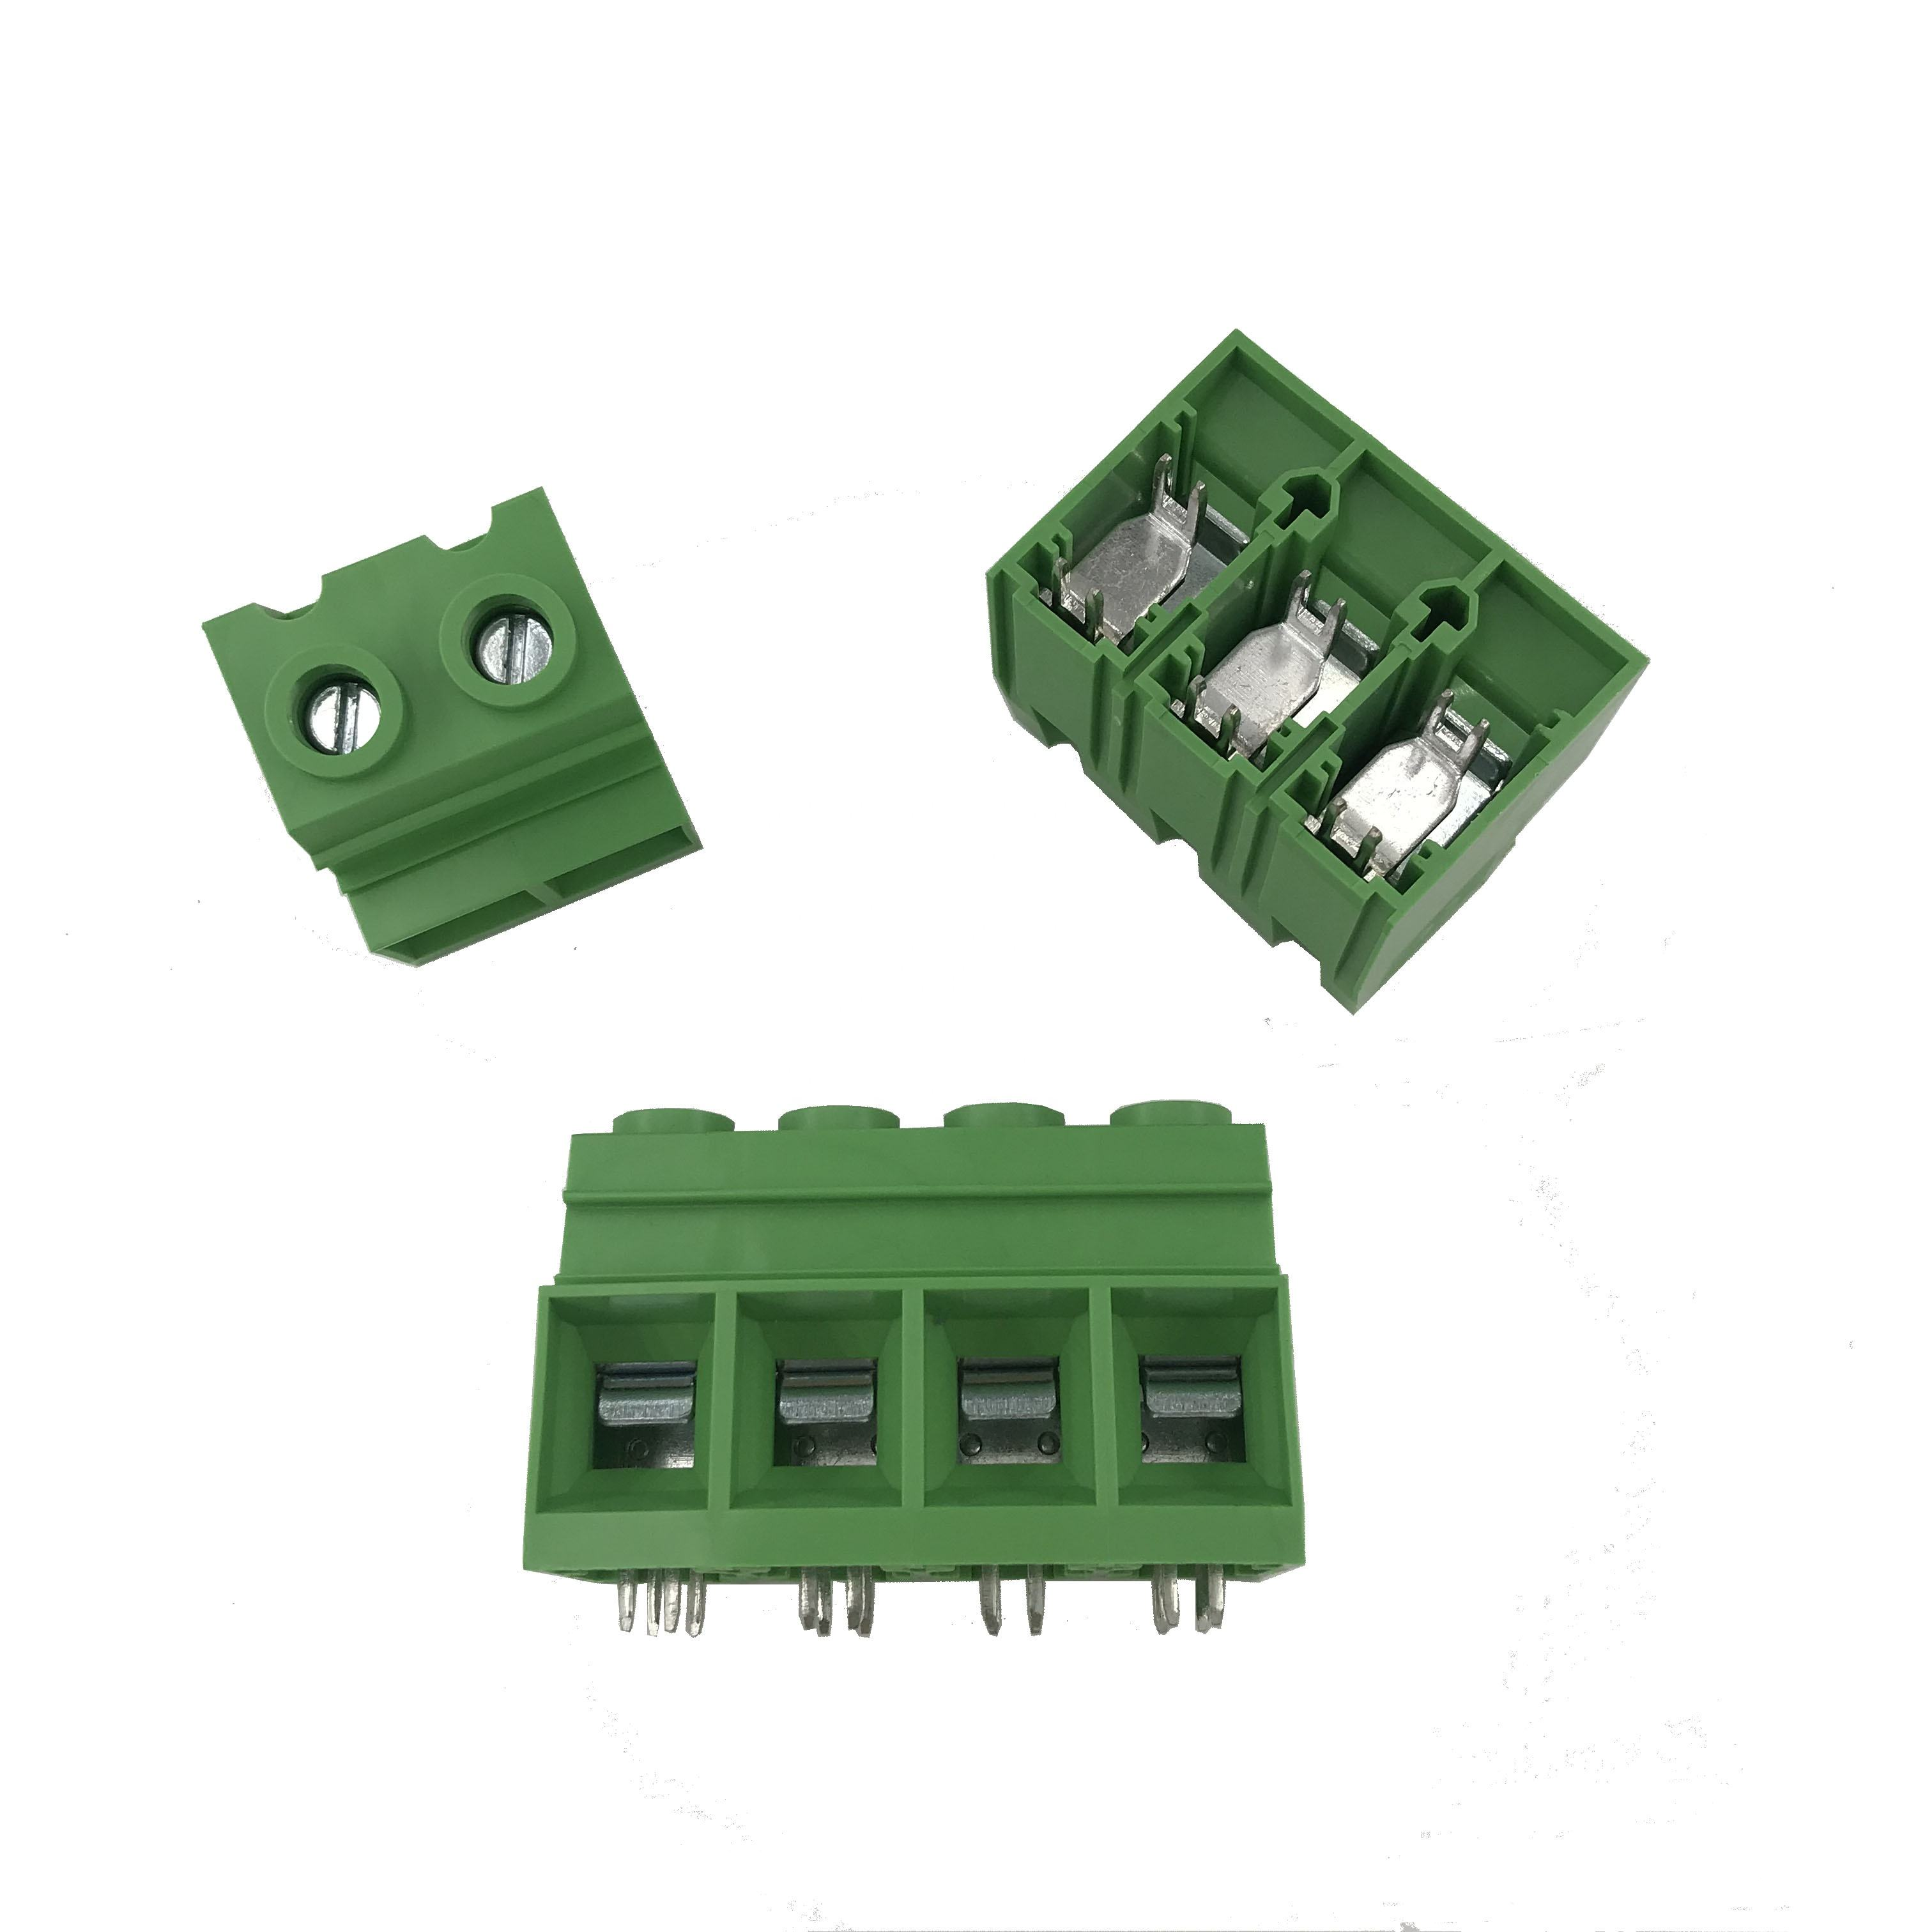 Telephone Motor PCB screw terminal block XK137T-15.0-3P with large power distribution 15.0mm pitch 600V 125A